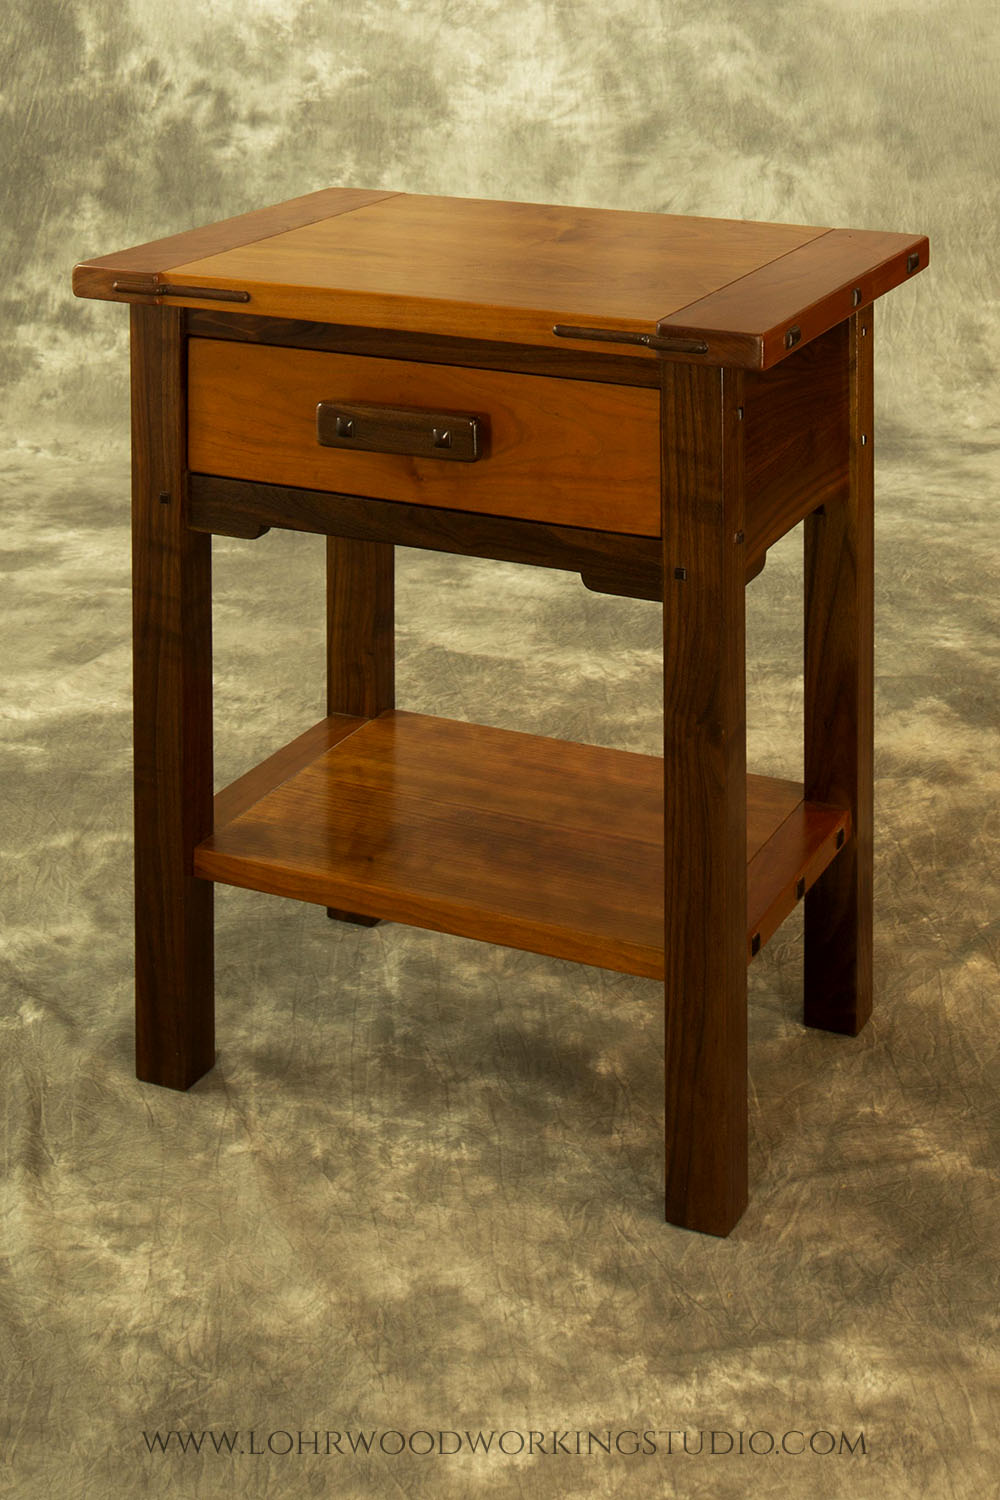 Walnut and Cherry Accessory Table